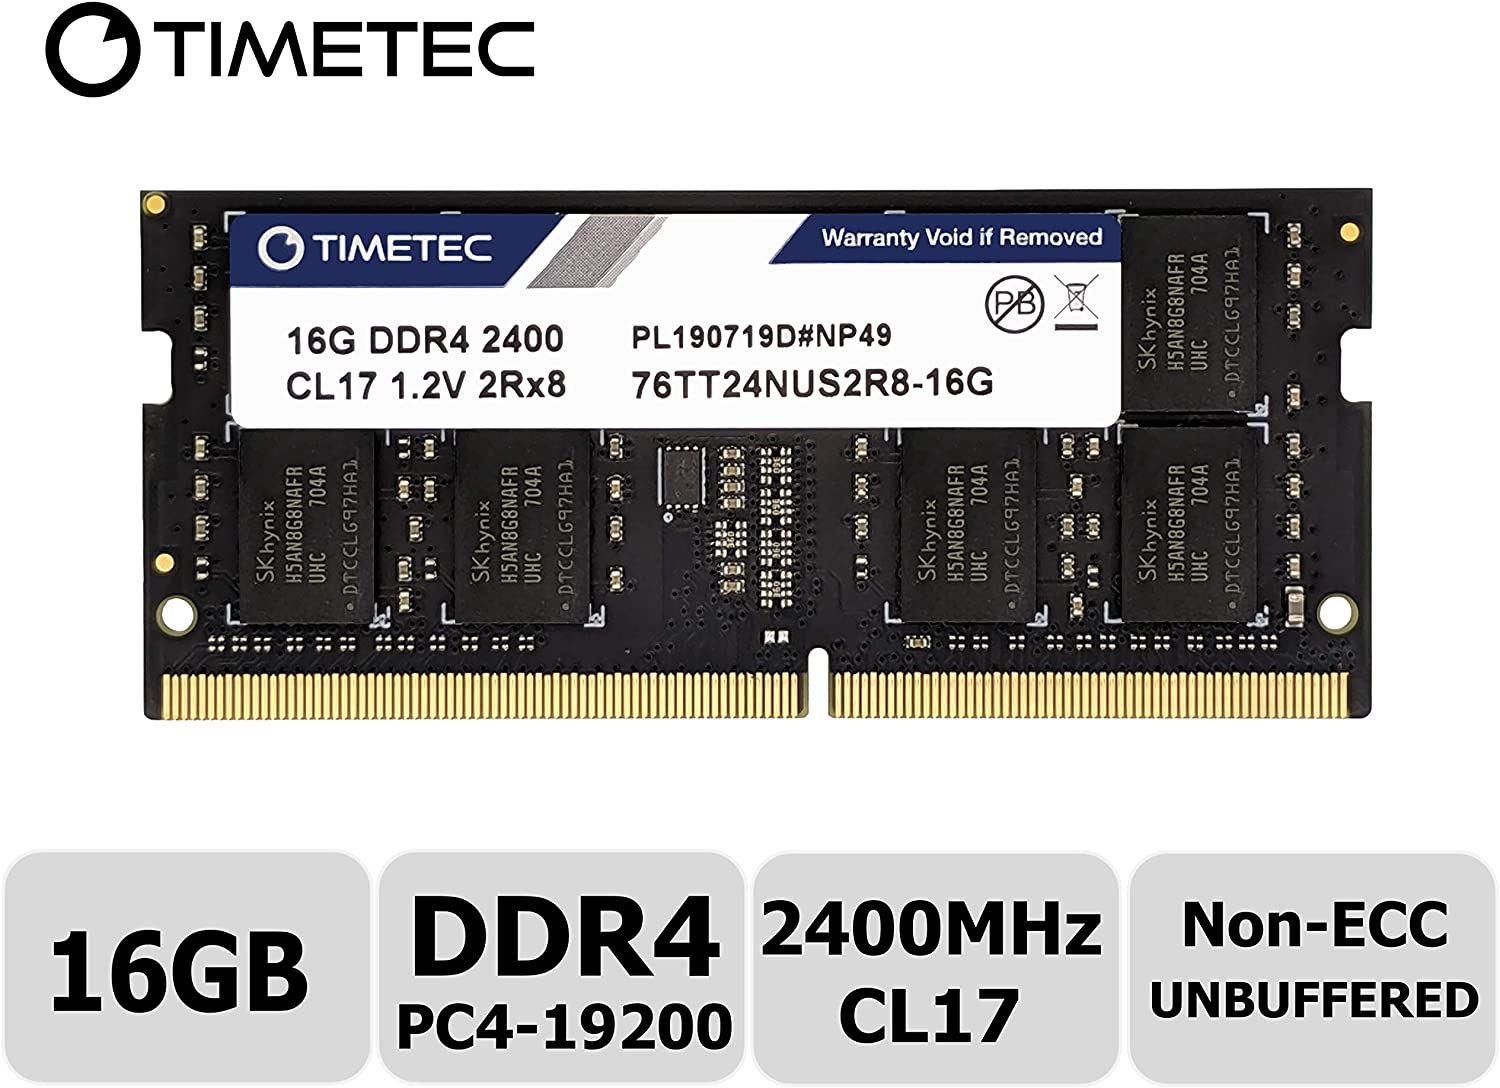 Timetec Hynix IC 16GB DDR4 2400MHz PC4-19200 Non ECC Unbuffered 1.2V CL17 2Rx8 Dual Rank 260 Pin SODIMM Laptop Notebook Computer Memory Ram Module Upgrade(16GB)